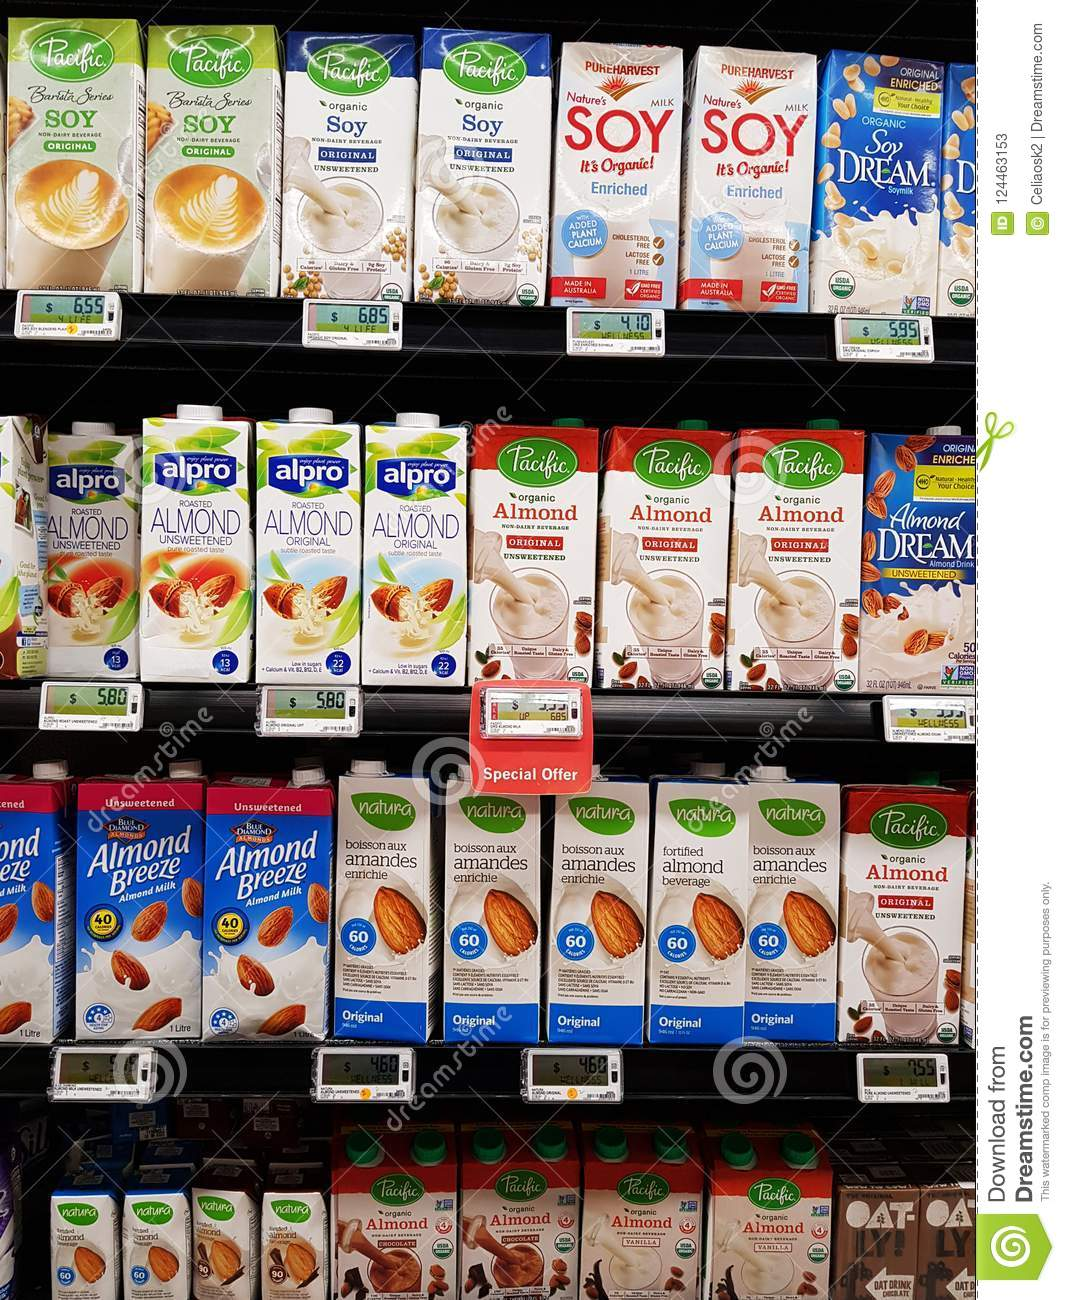 Different brands of Almond, Soy and Oat Milk